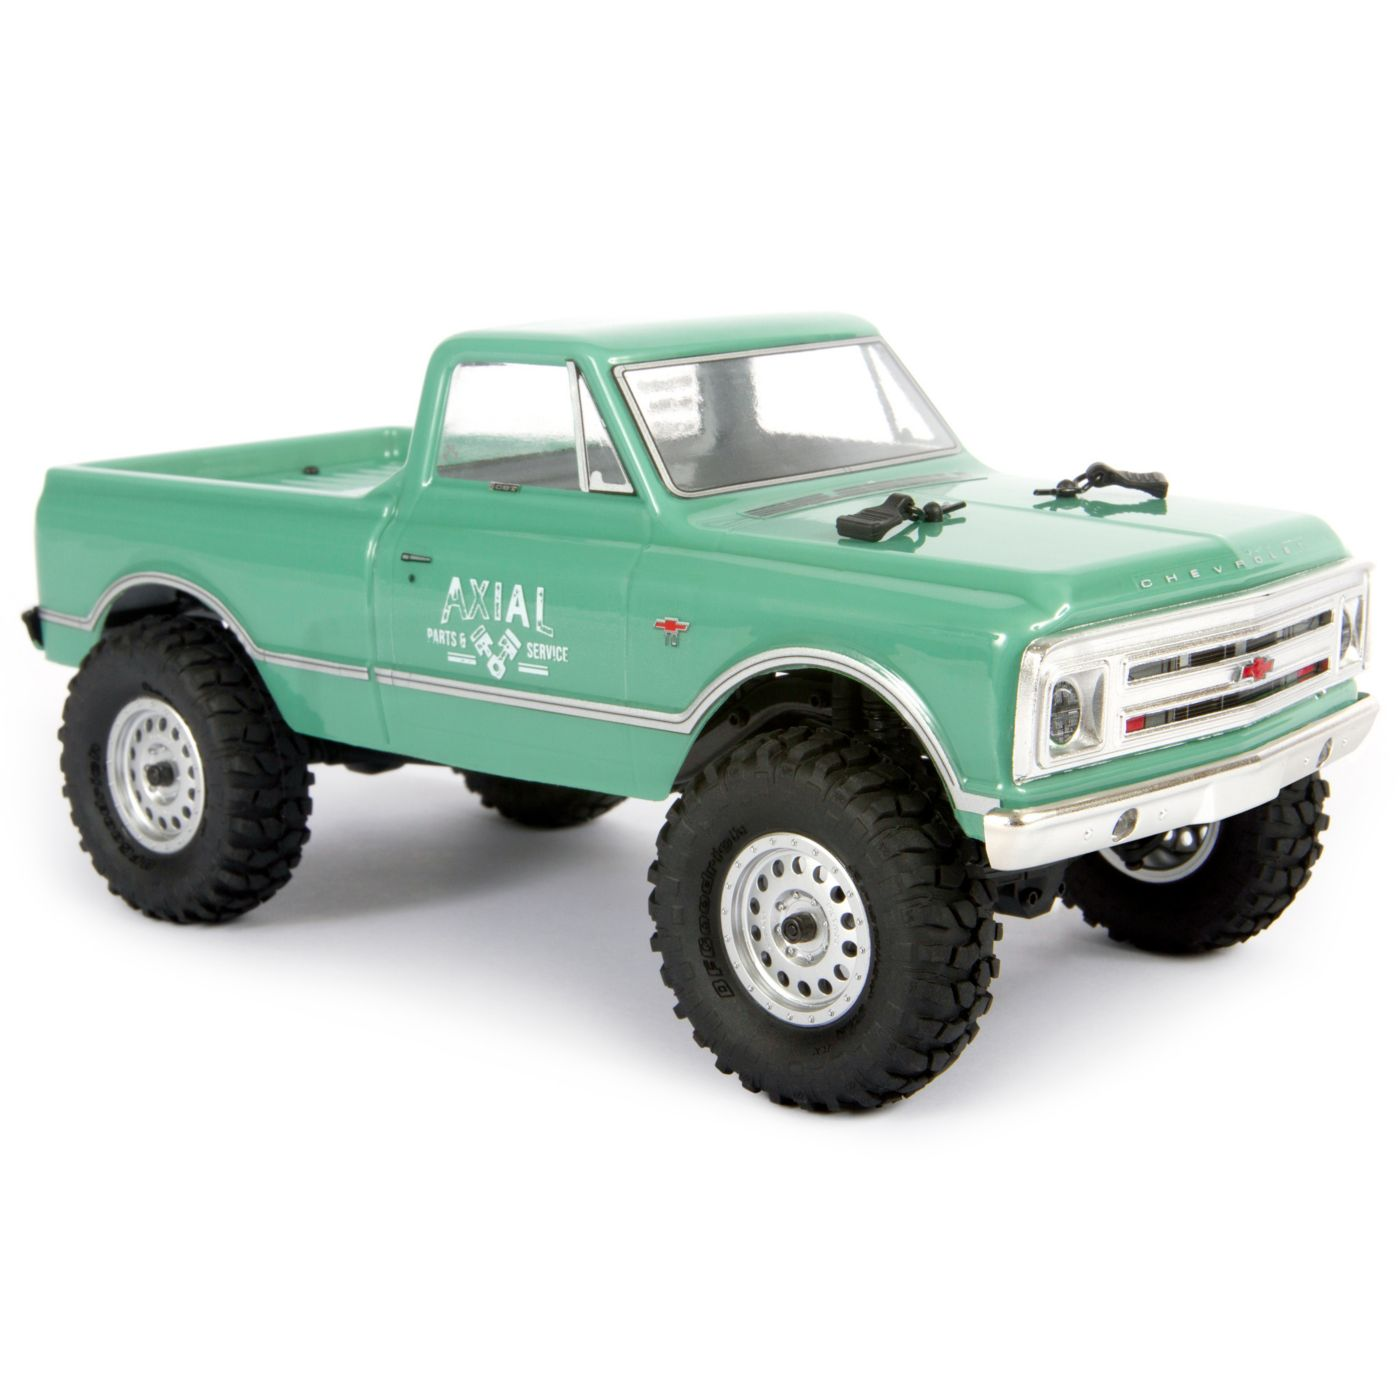 Axial Racing 1/24 SCX24 1967 Chevrolet C10 4WD Truck Brushed RTR, Green